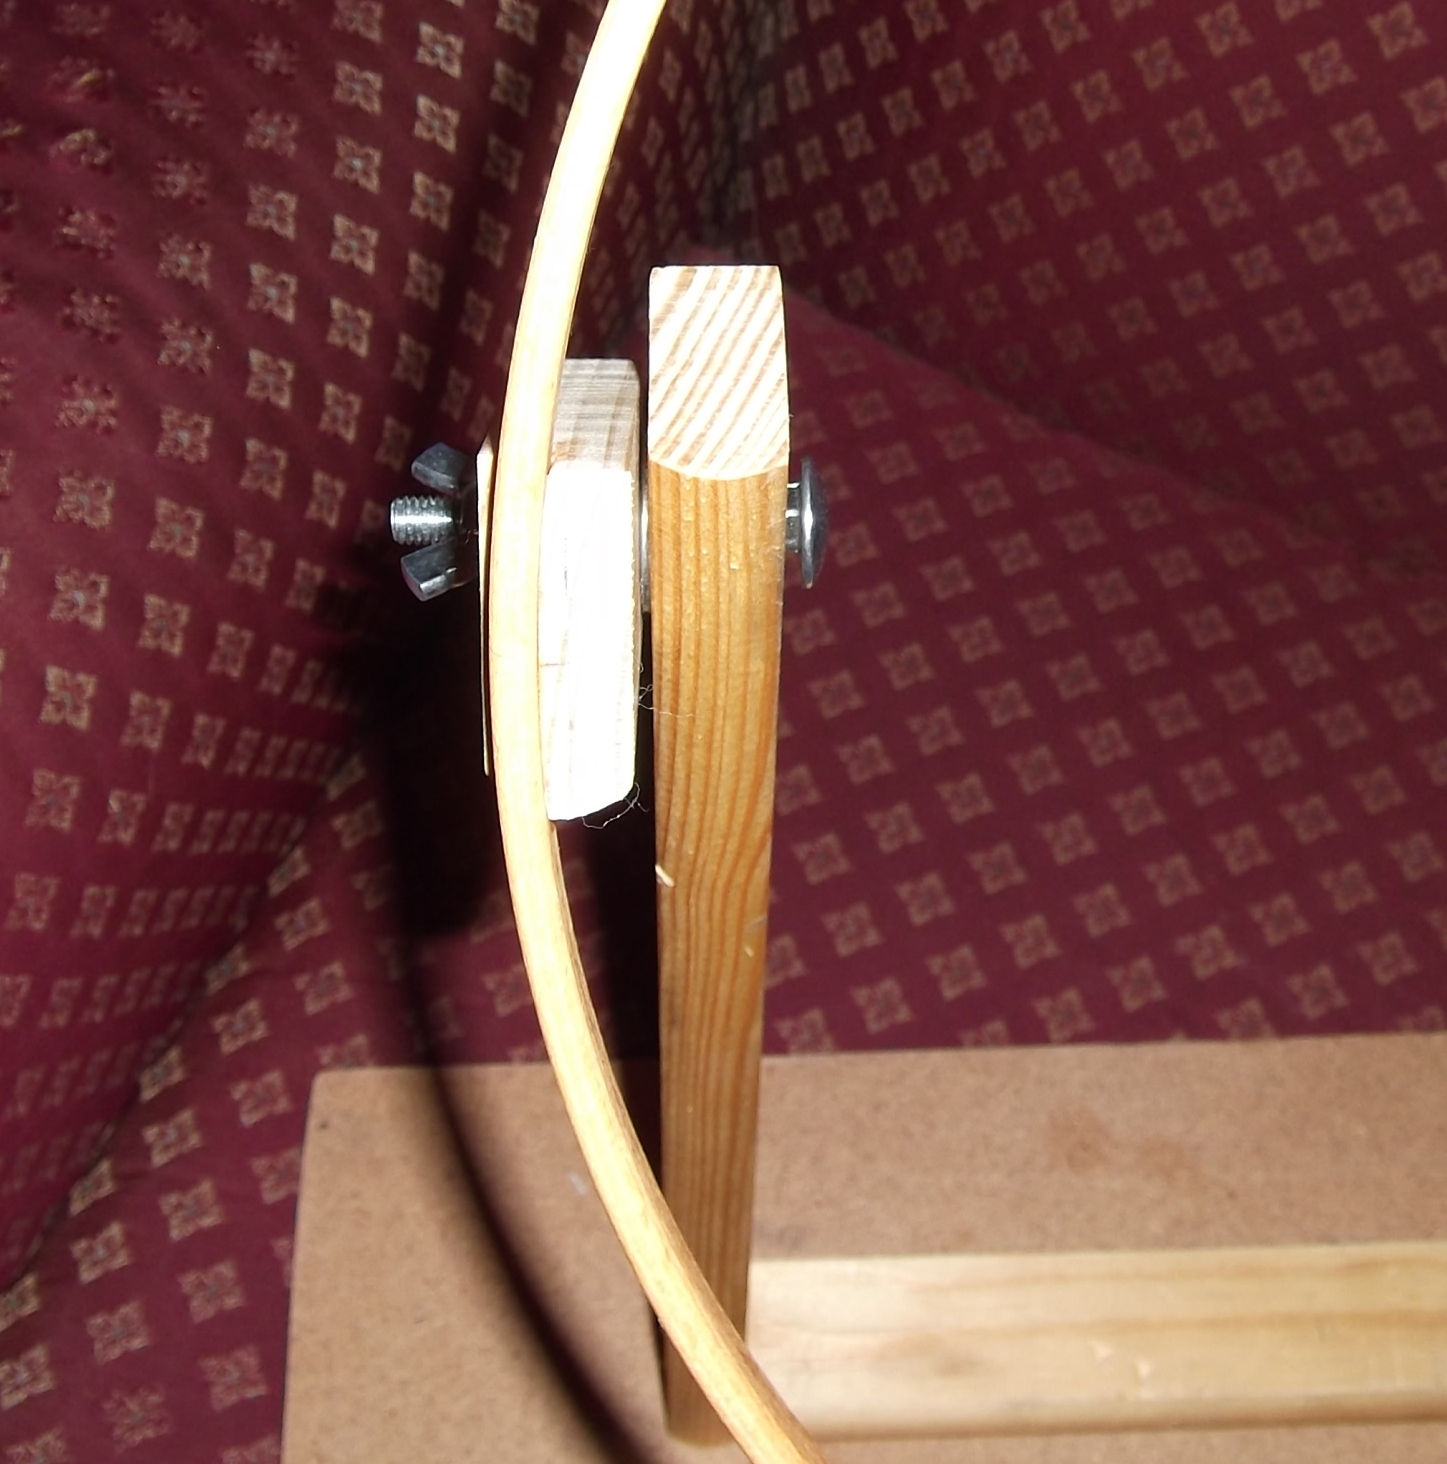 Elga s miniatures embroidery hoop turned into lap stand